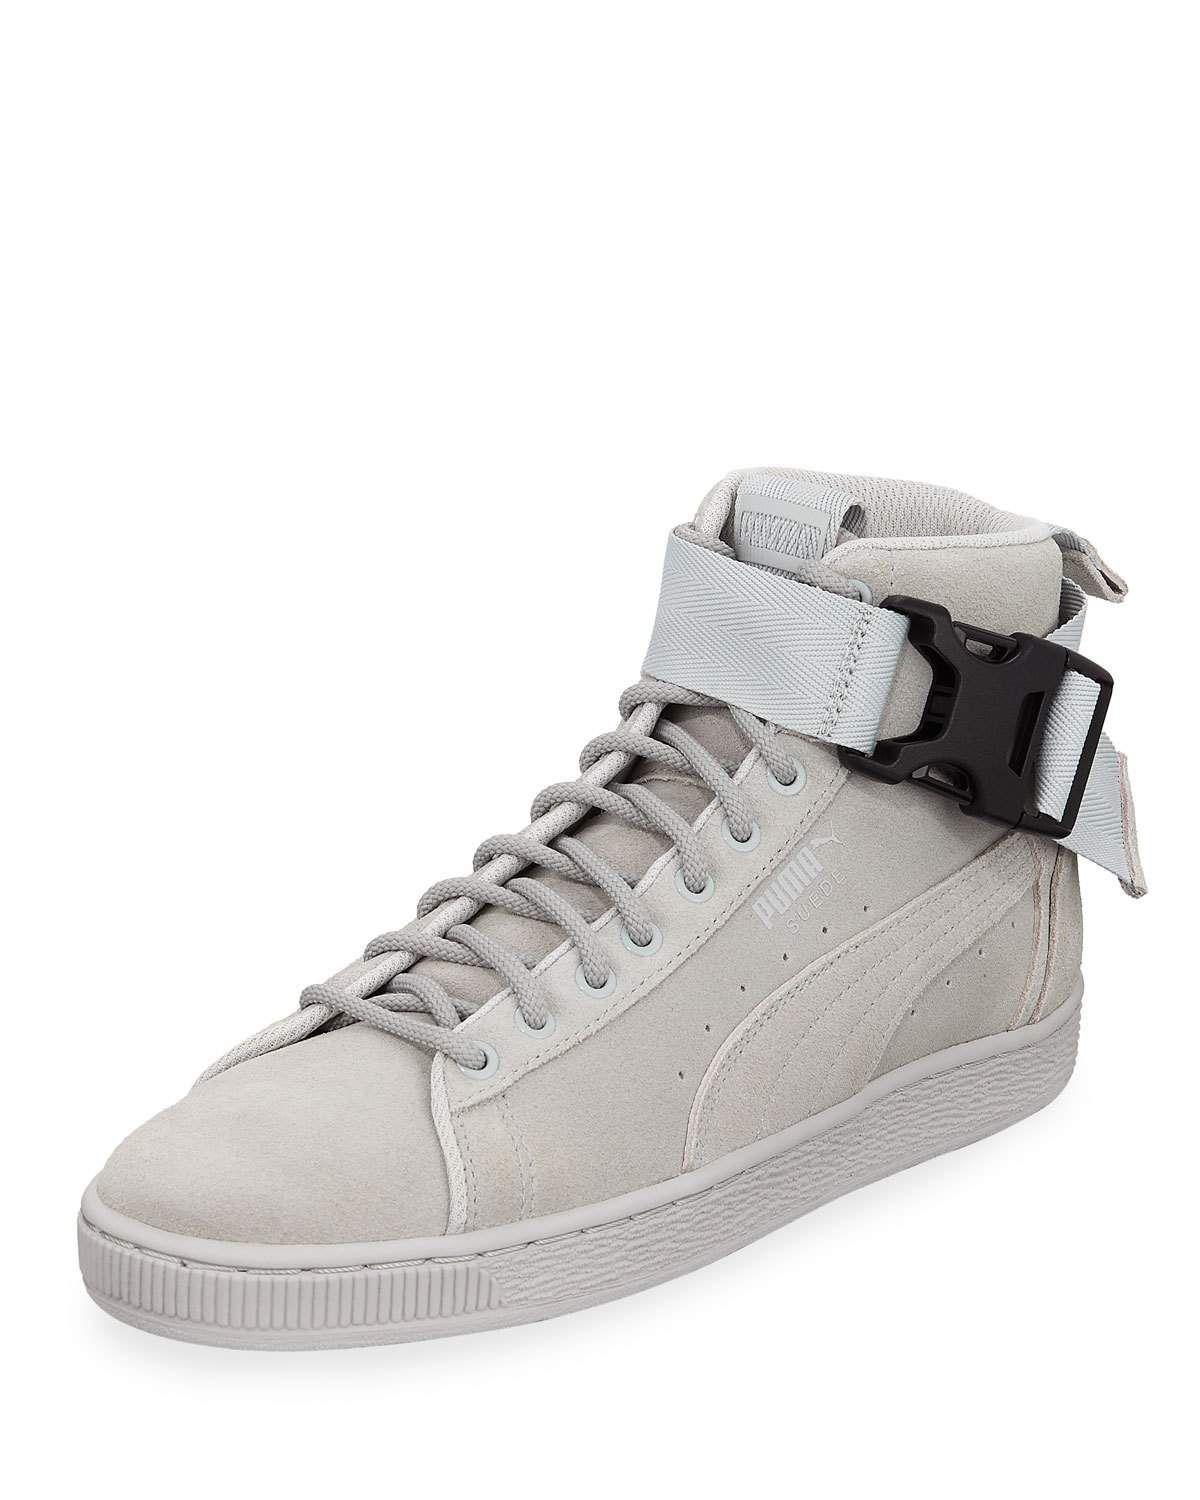 4374f387472 PUMA MEN S SUEDE MID-TOP SNEAKERS W  ANKLE STRAP.  puma  shoes ...